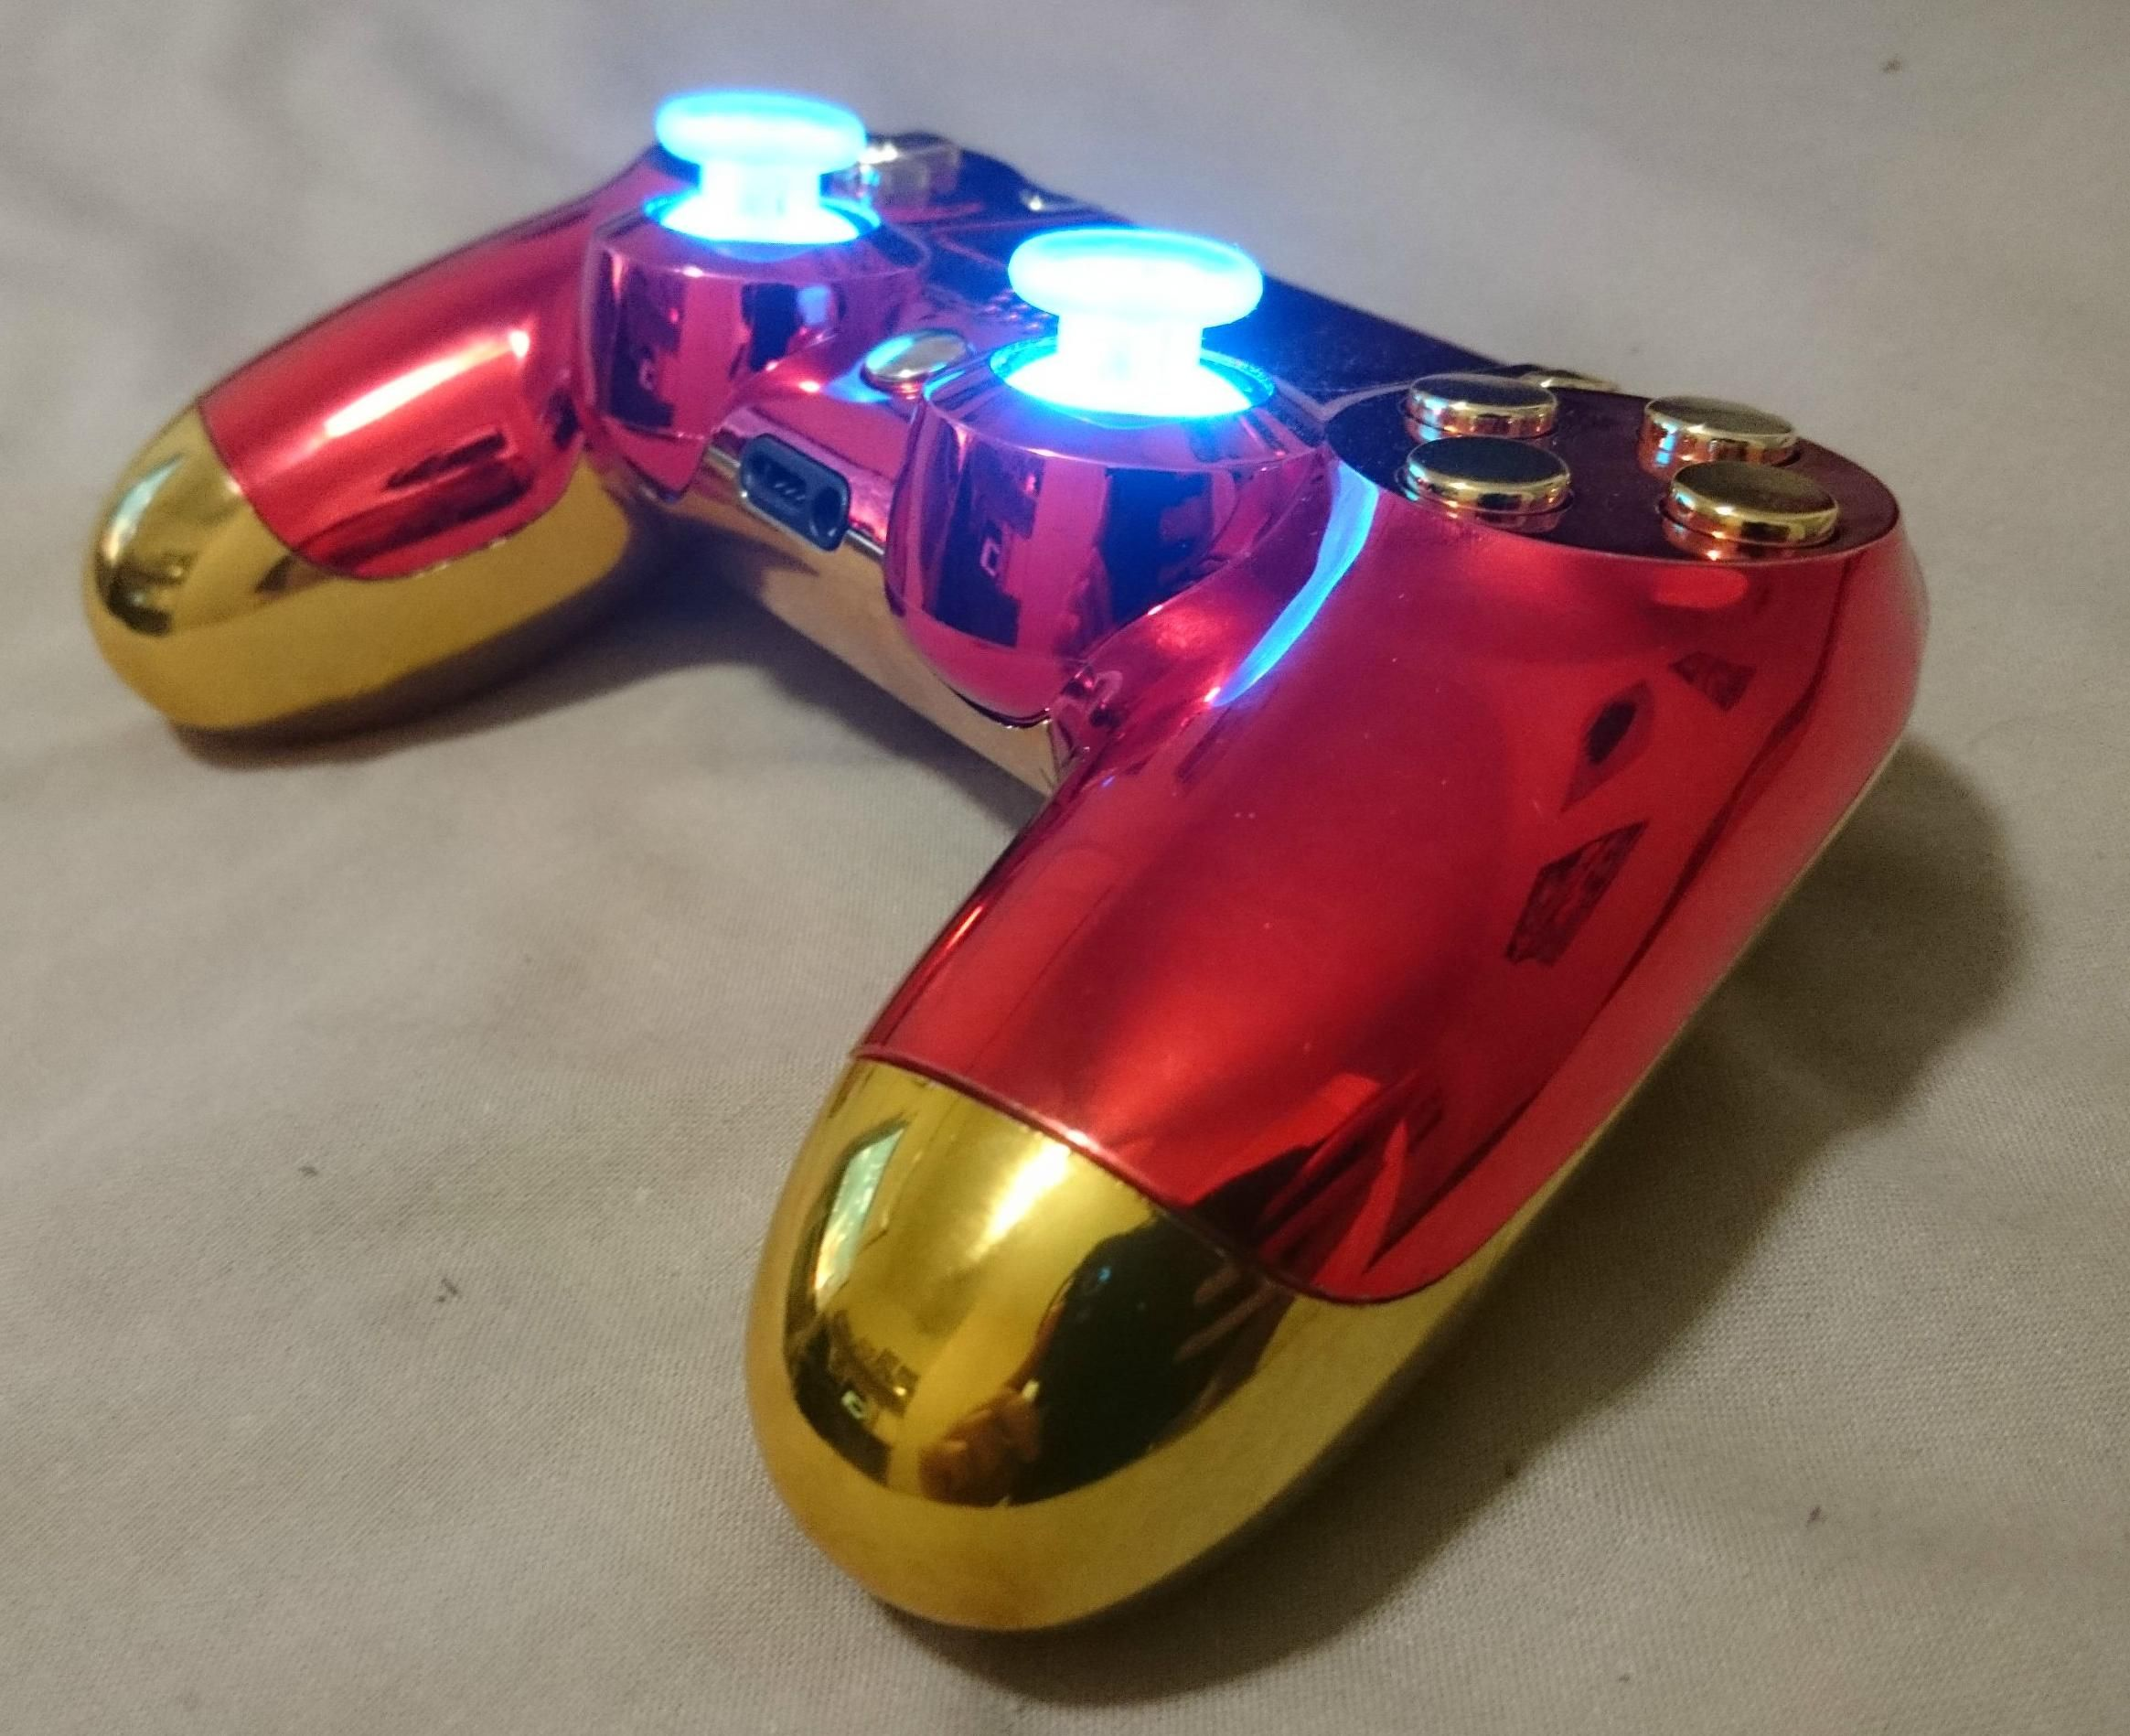 Iron Man Ps4 Controller Challenges Tony Starks Knack For Innovation Mouse Game Wireless Diy Ironman Modding